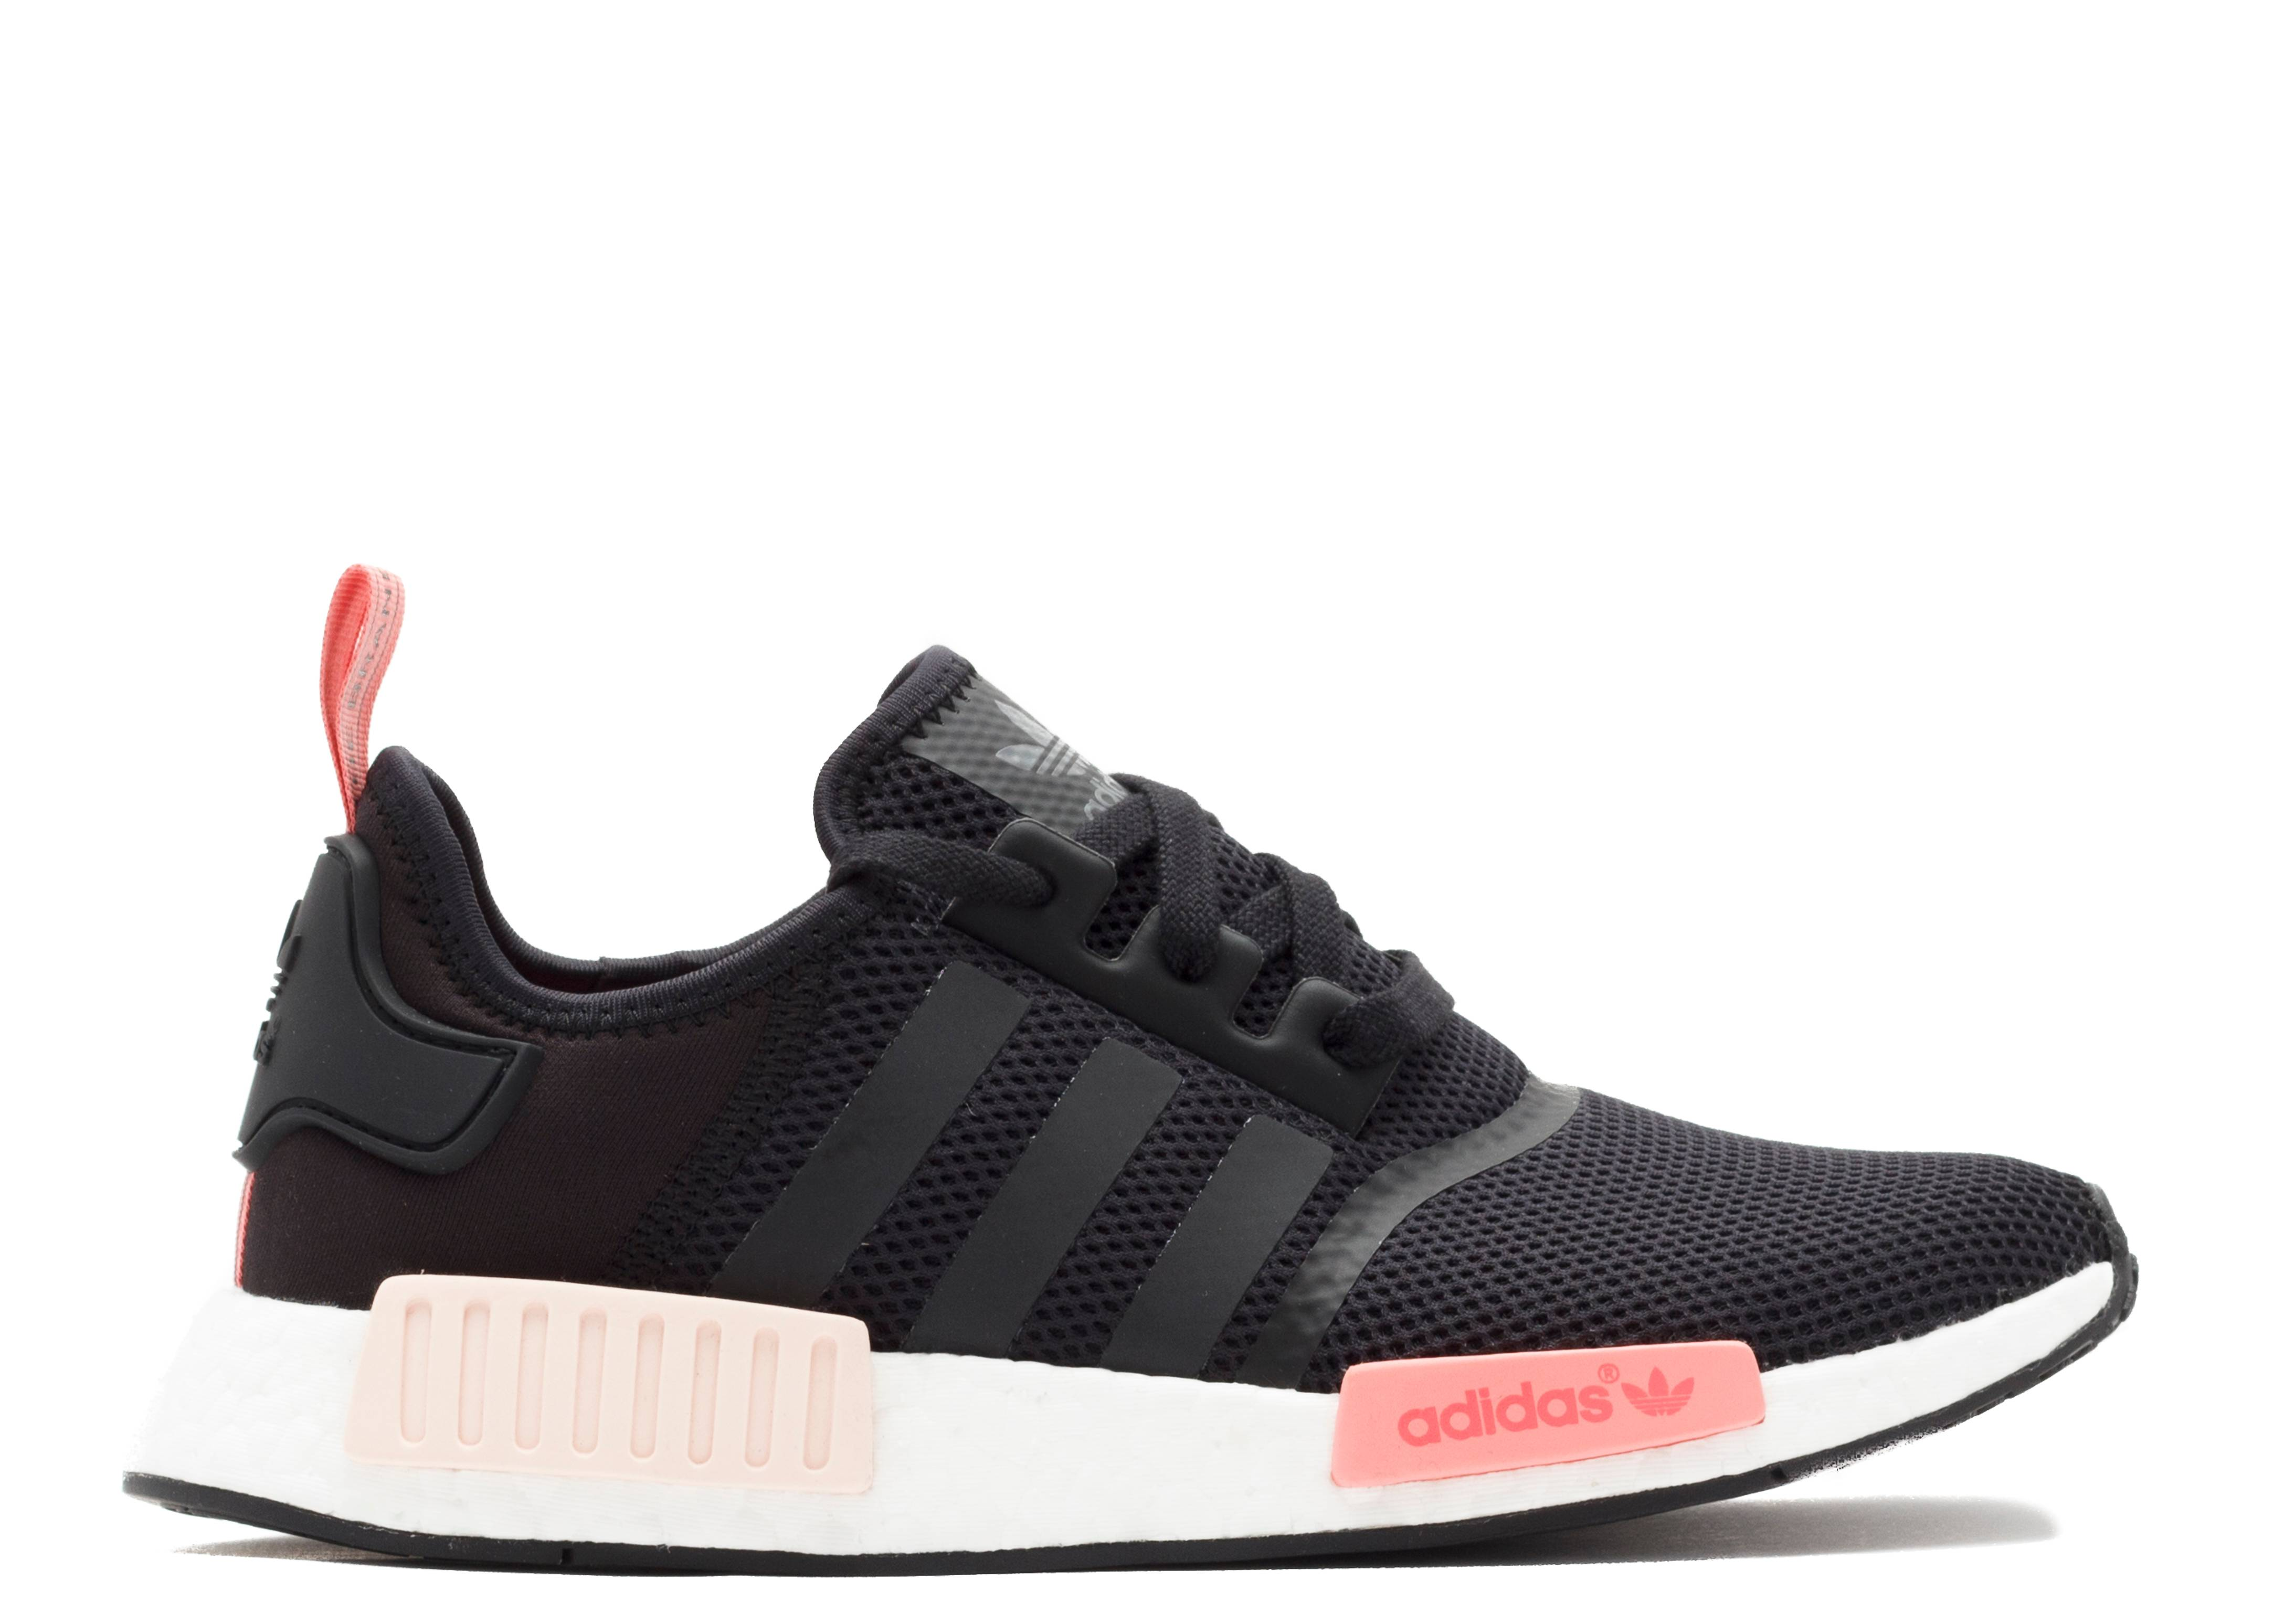 adidas NMD R1 W shoes white pink